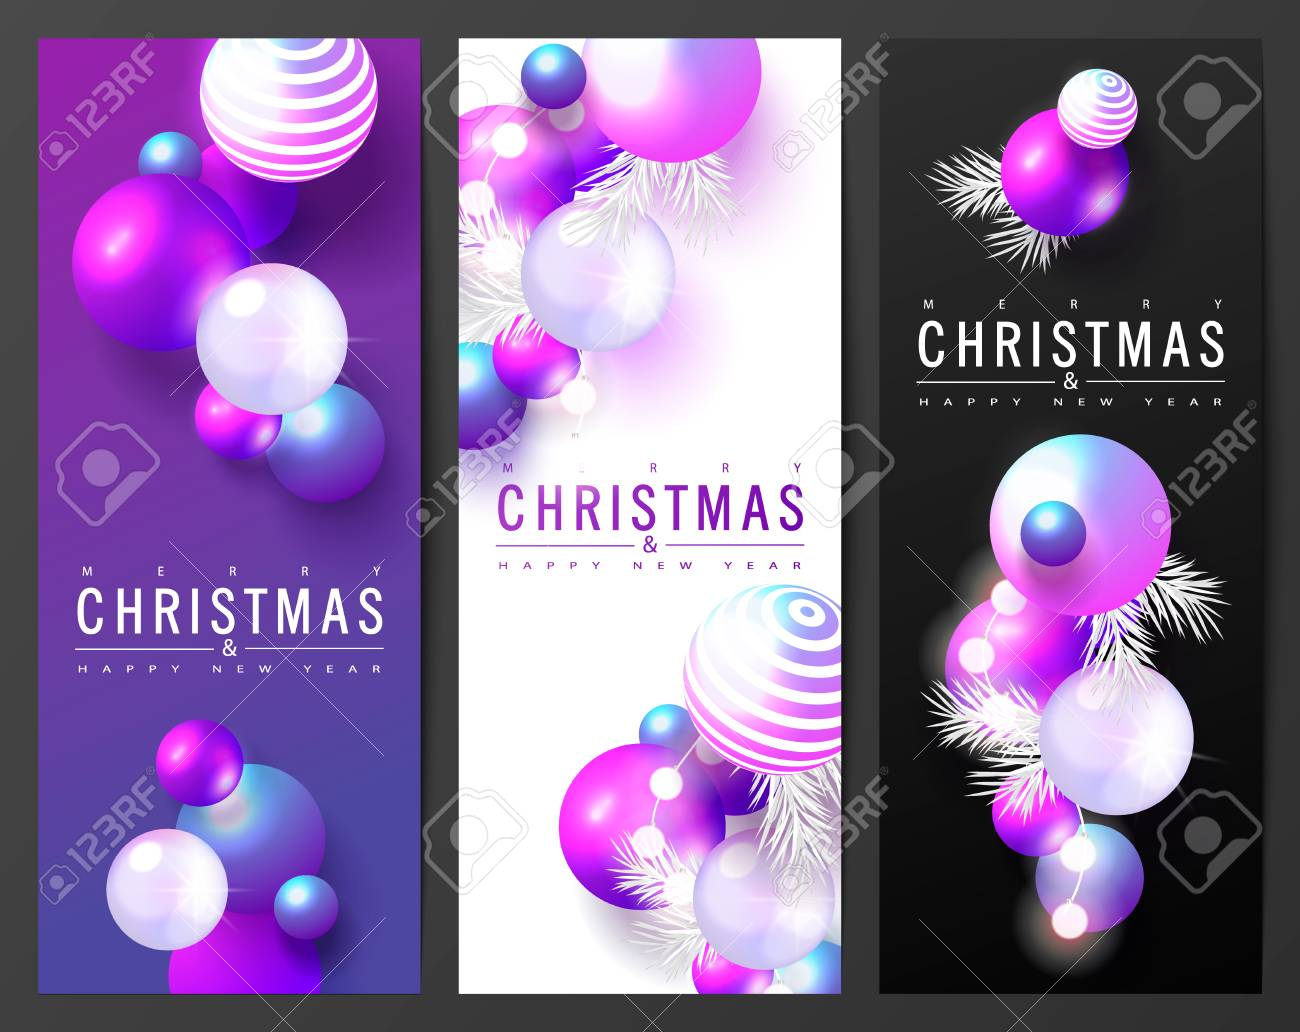 2019 Merry Christmas And Happy New Year Cards Collection With